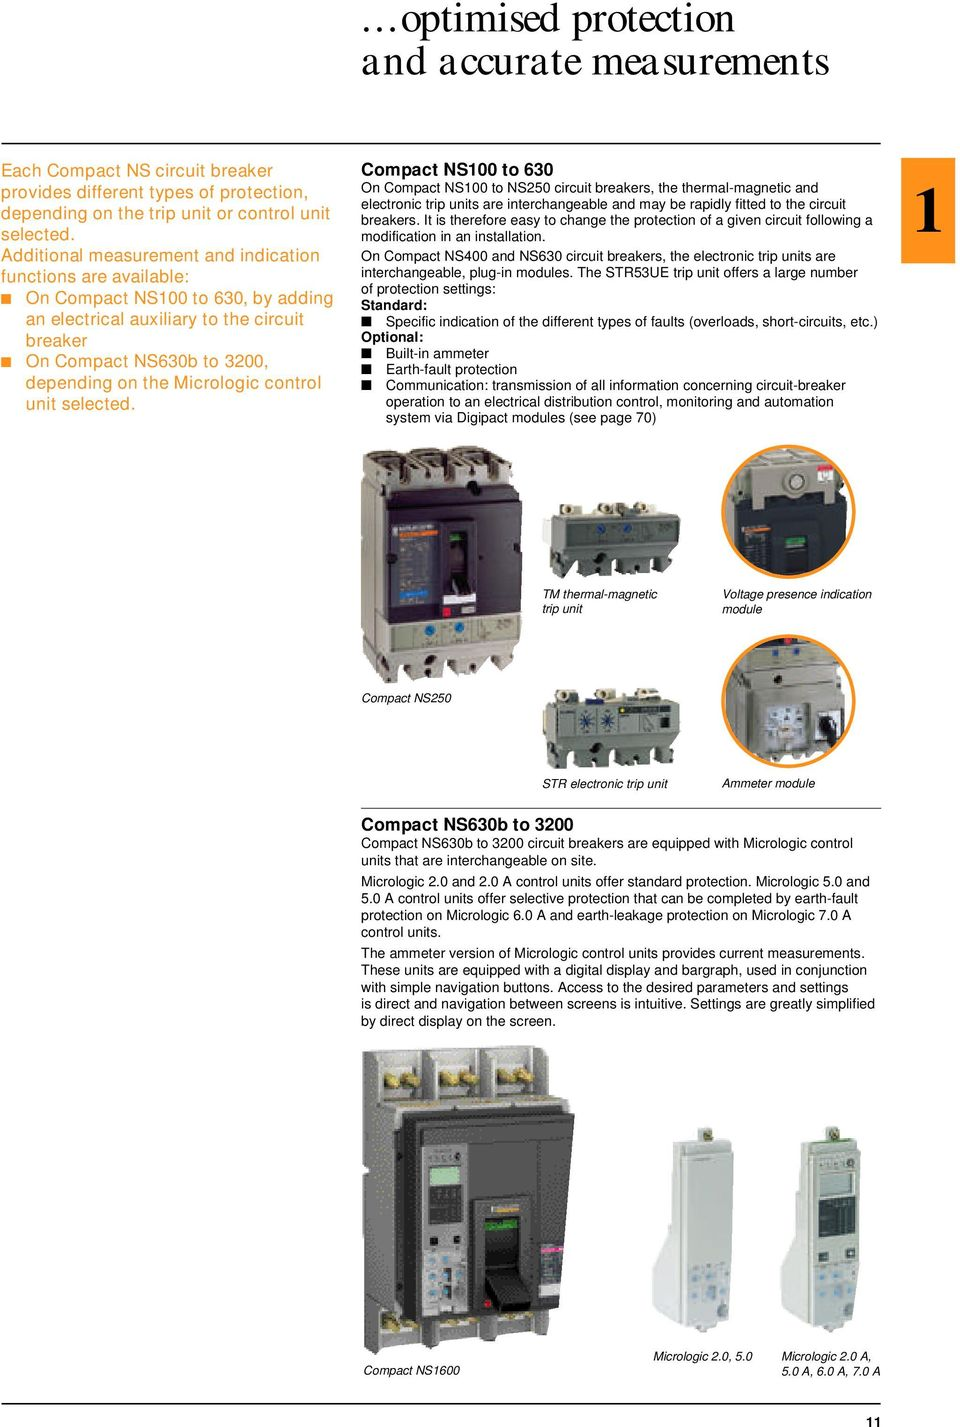 Catalogue Merlin Gerin Compact Lv Circuit Breakers And Switch Protection Of A Generator Set The Downstream Circuits Micrologic Control Unit Selected